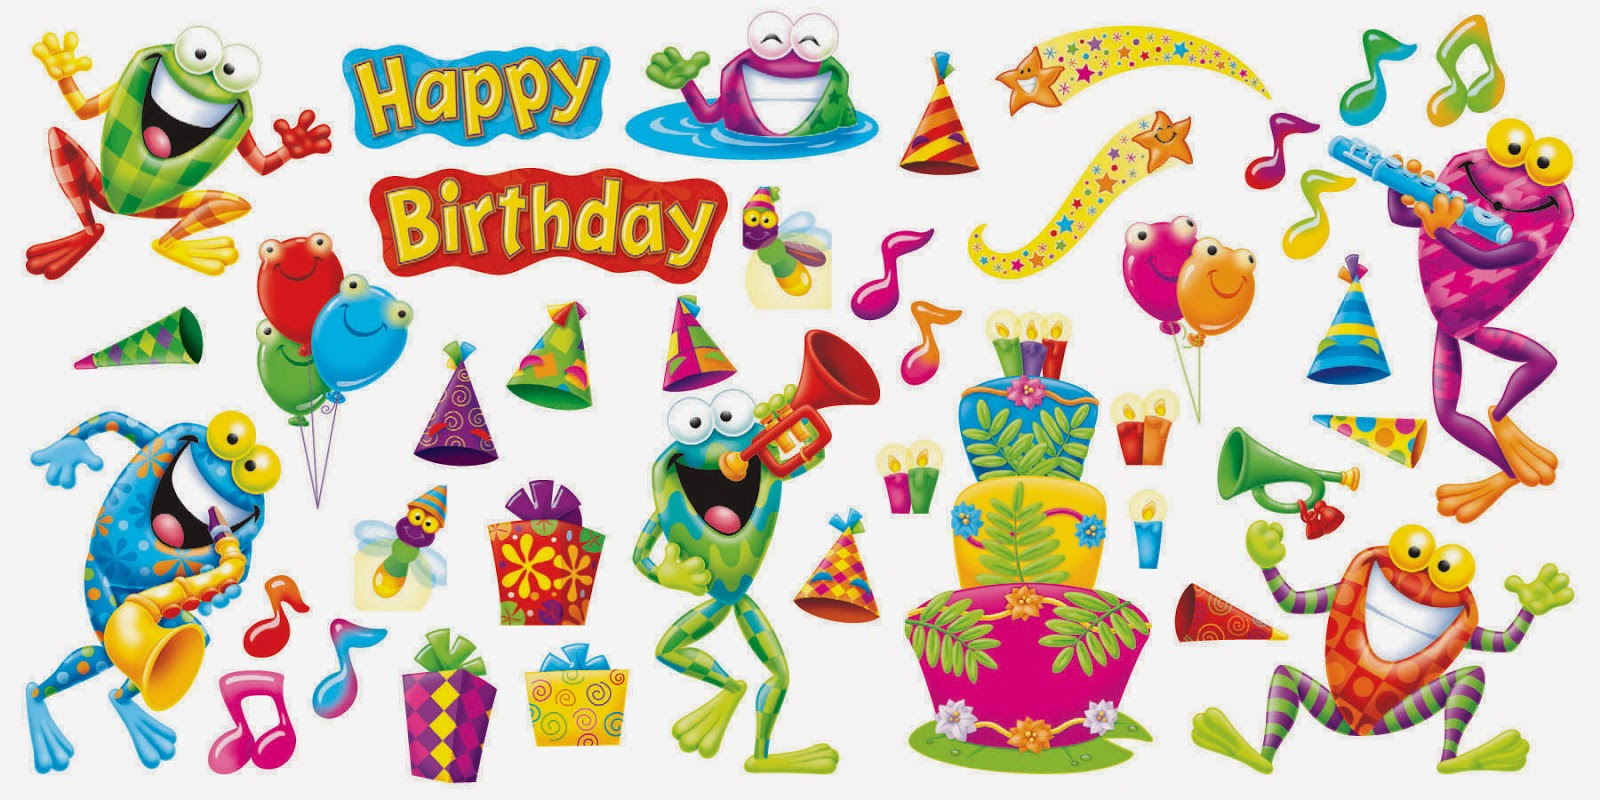 Birthday-clipart-images-pictures-hd-free-download-for-pc-desktop-1800x900